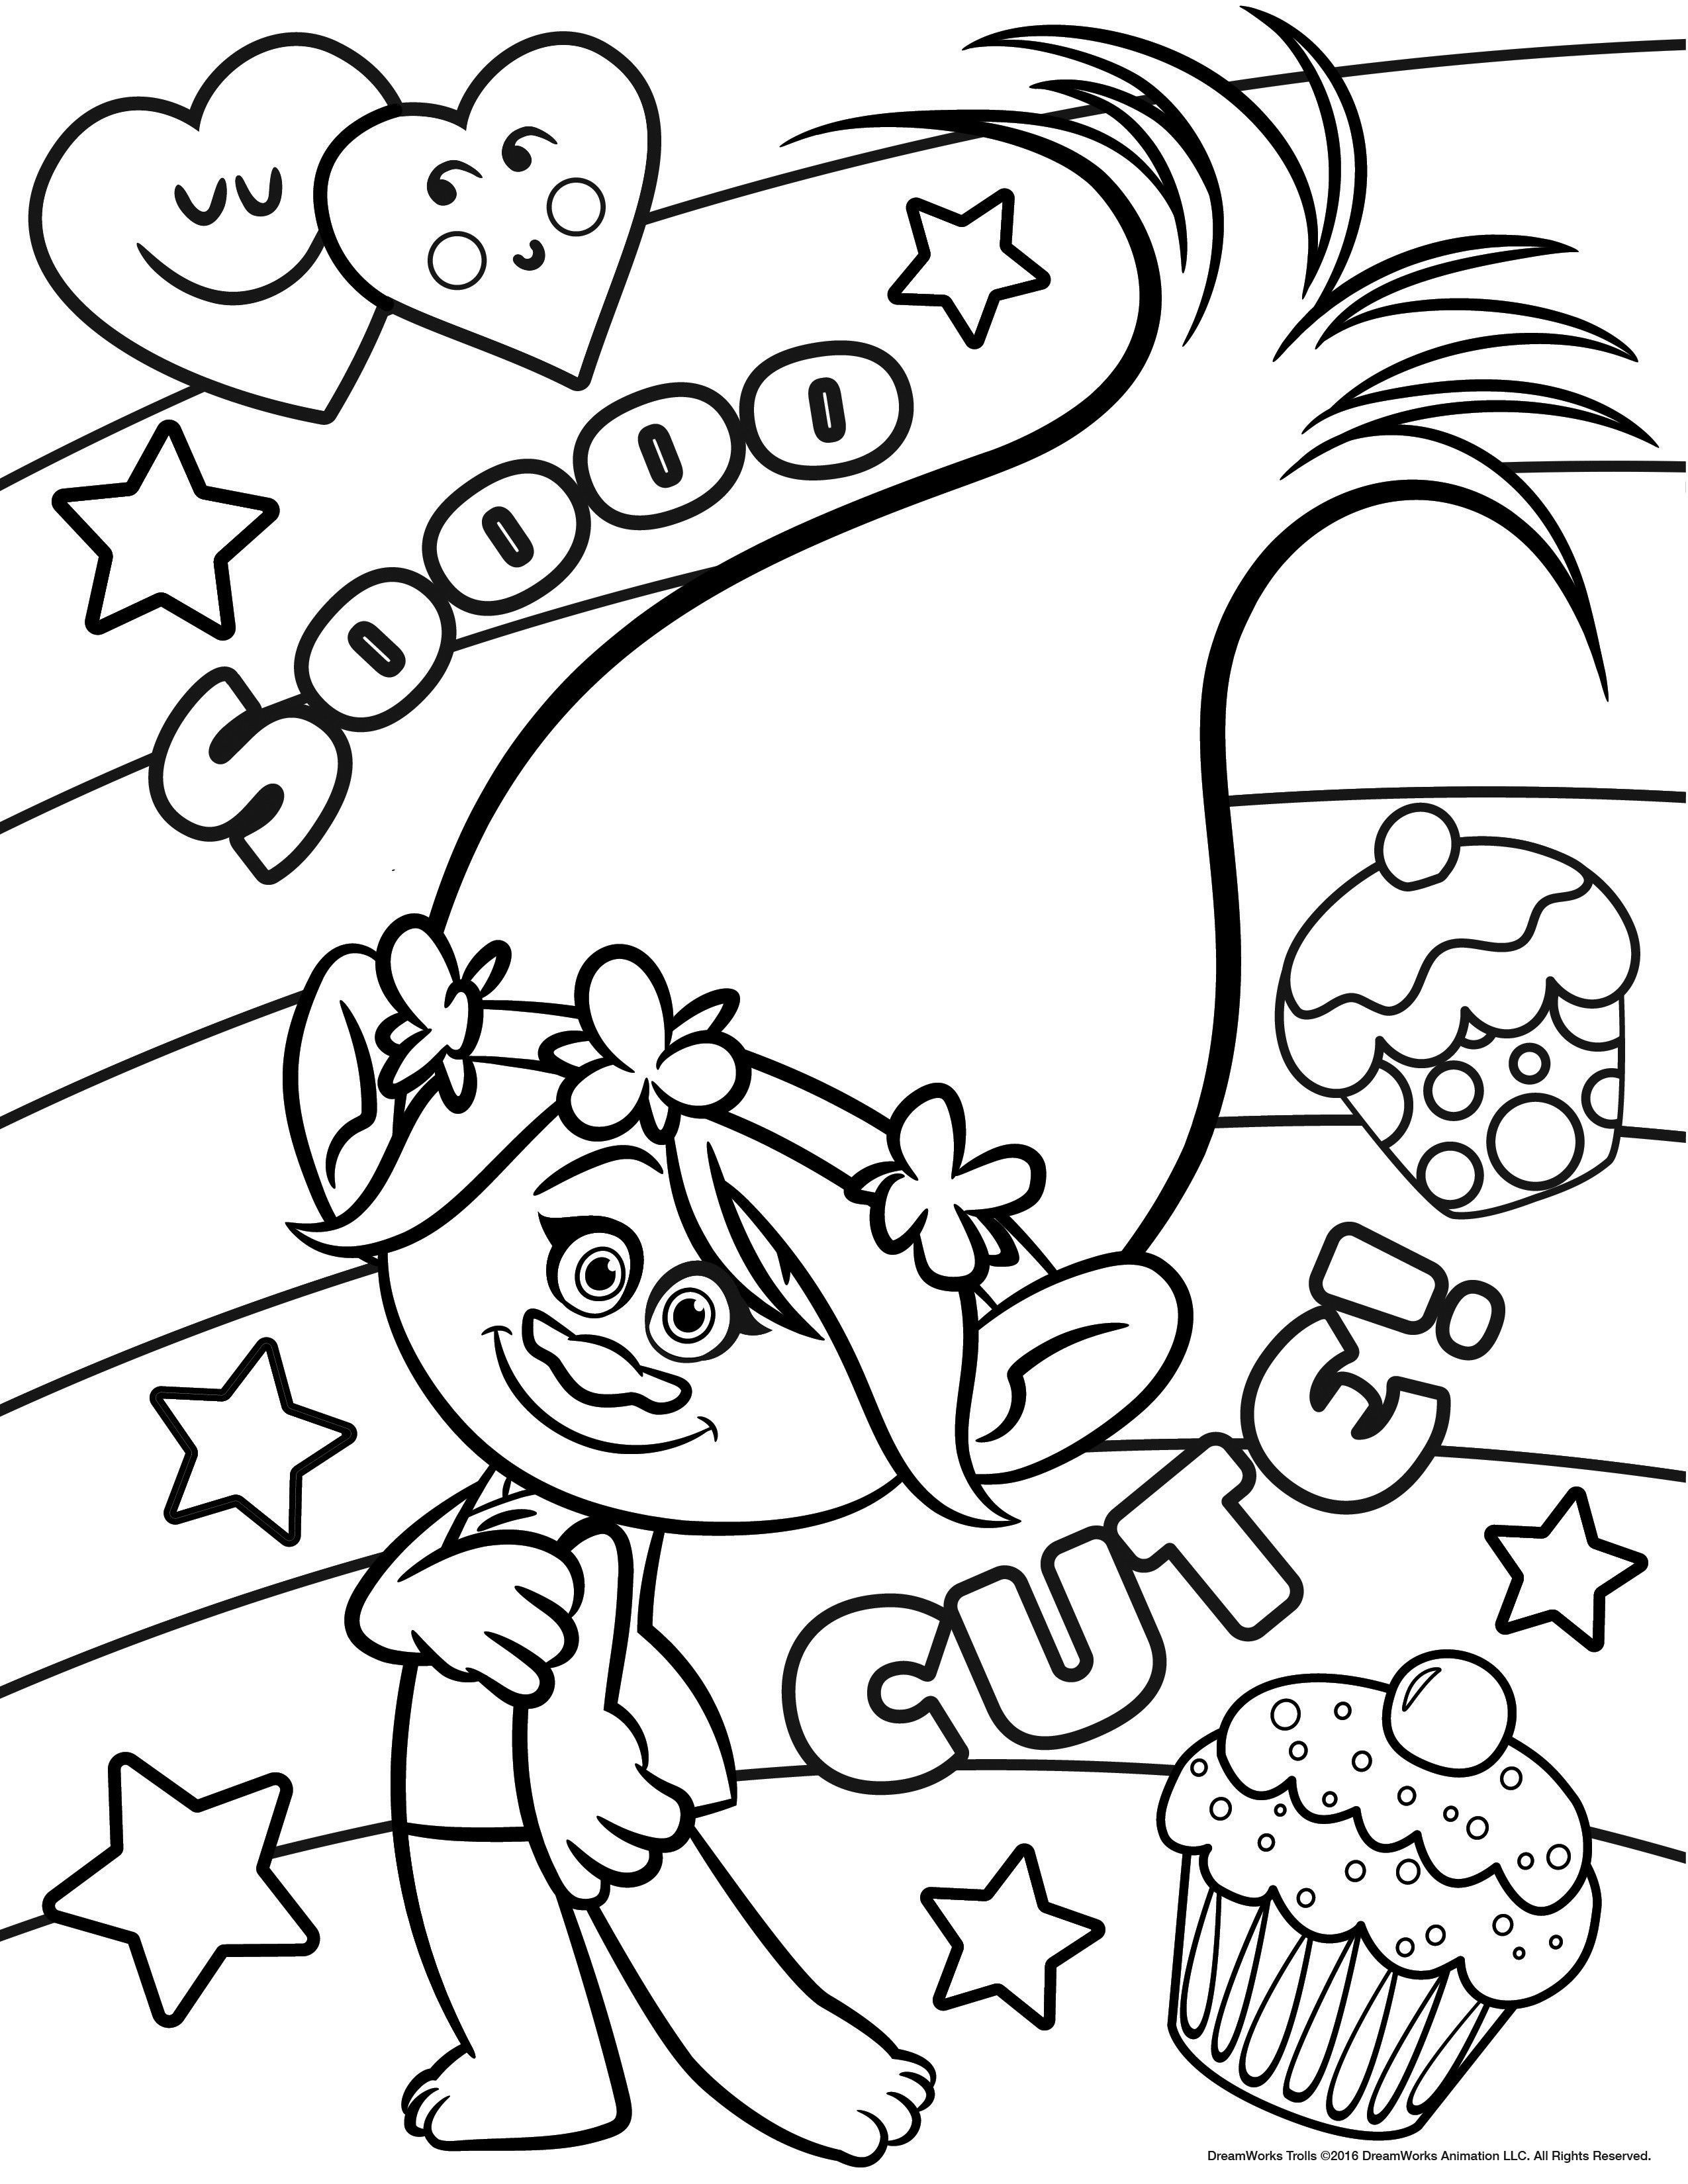 Trolls Coloring Pages | Kids | Cute Coloring Pages, Poppy Coloring - Free Printable Troll Coloring Pages